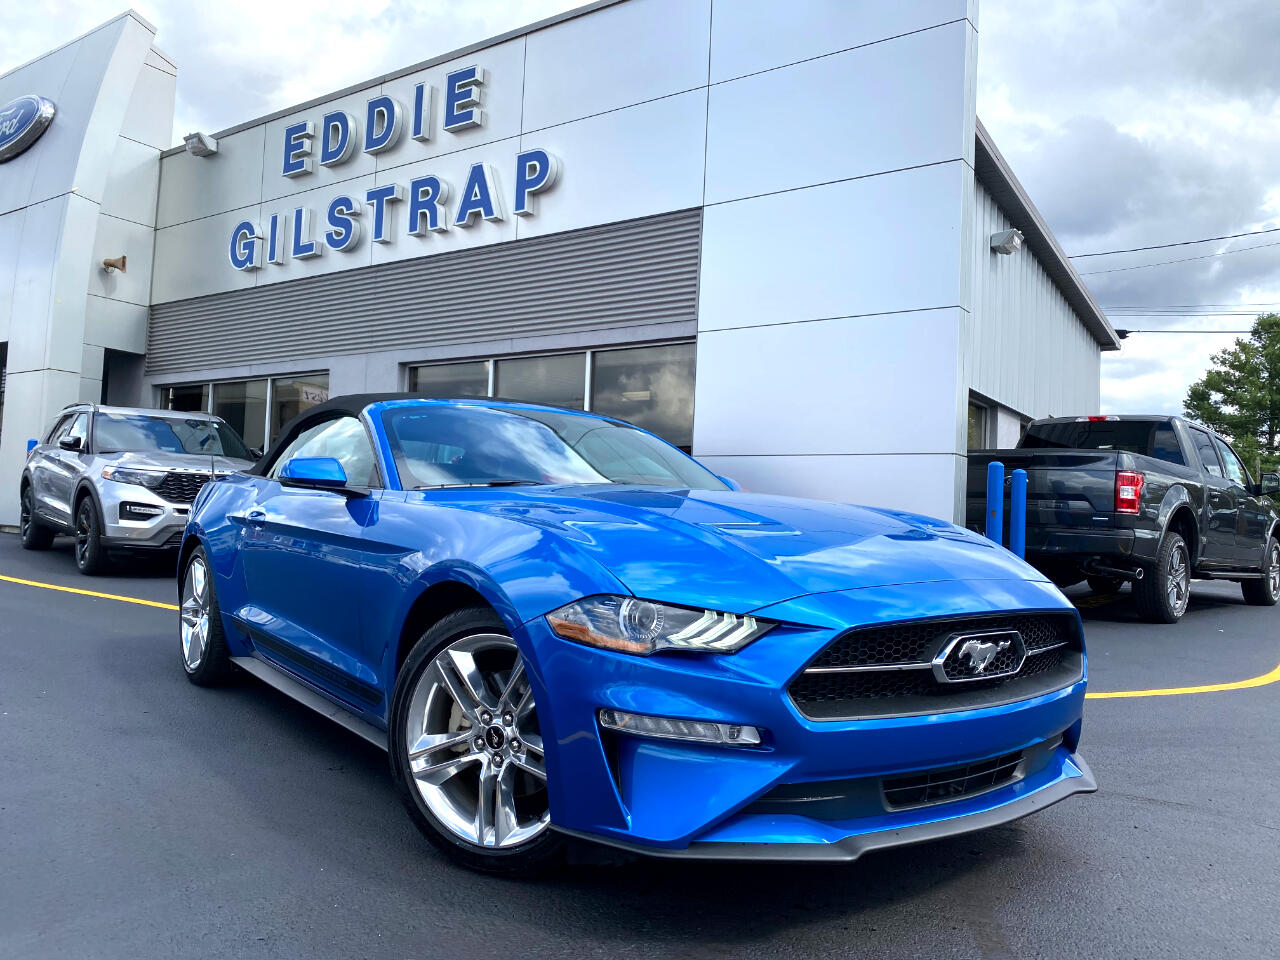 Used 2020 Ford Mustang Ecoboost Premium Convertible For Sale In Salem In 47150 Eddie Gilstrap Motors Inc